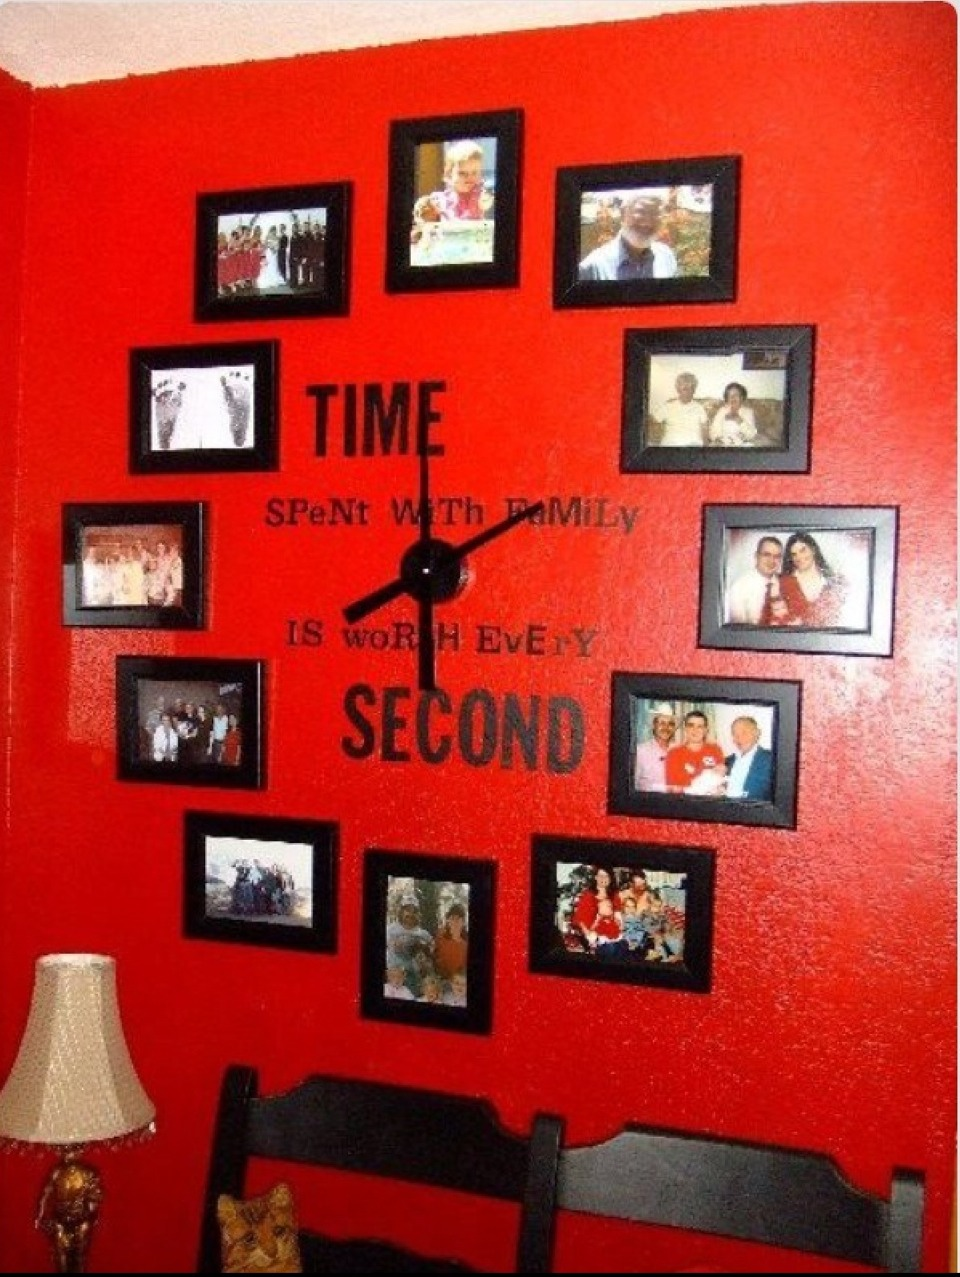 Cool Way To Make Your House And Room Look Amazing